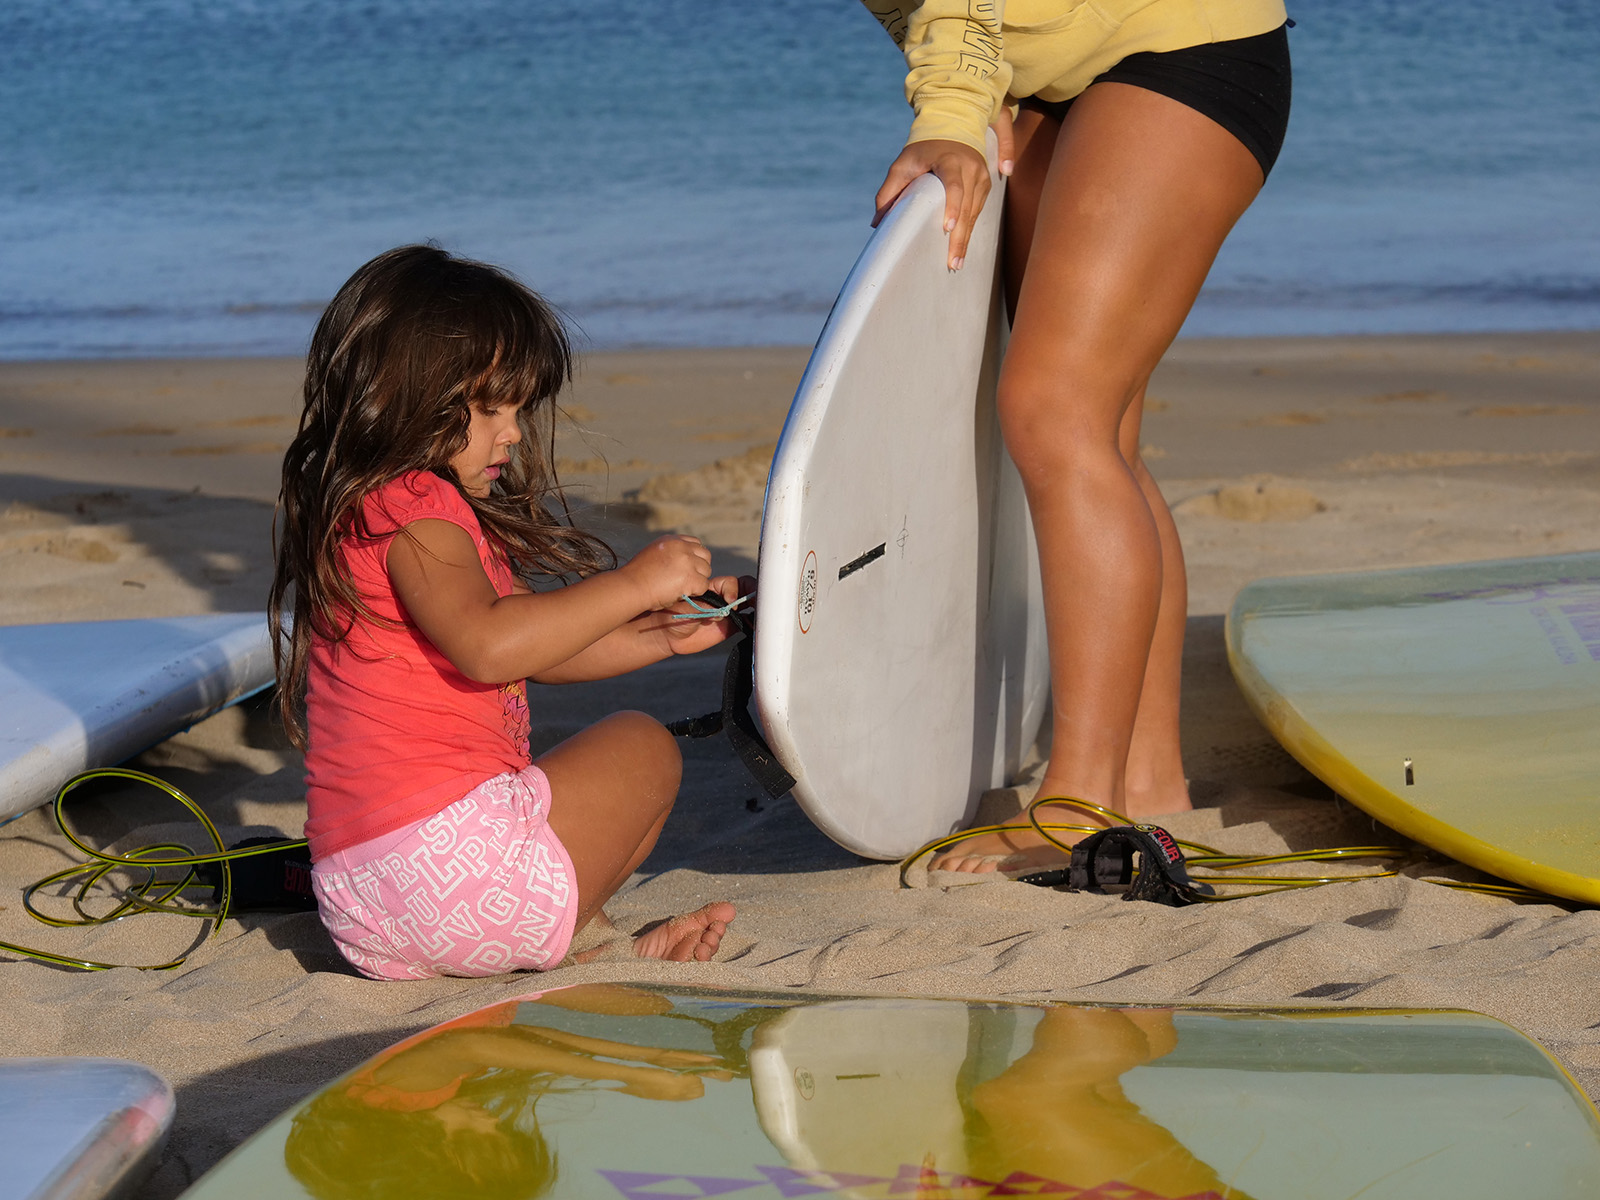 <p>Papua DeSoto, 5, attaches a fin to a paddle board in preparation for the ocean clinic. The clinics are held monthly around Oahu to teach safety and stewardship to young people ages 2-18.</p>